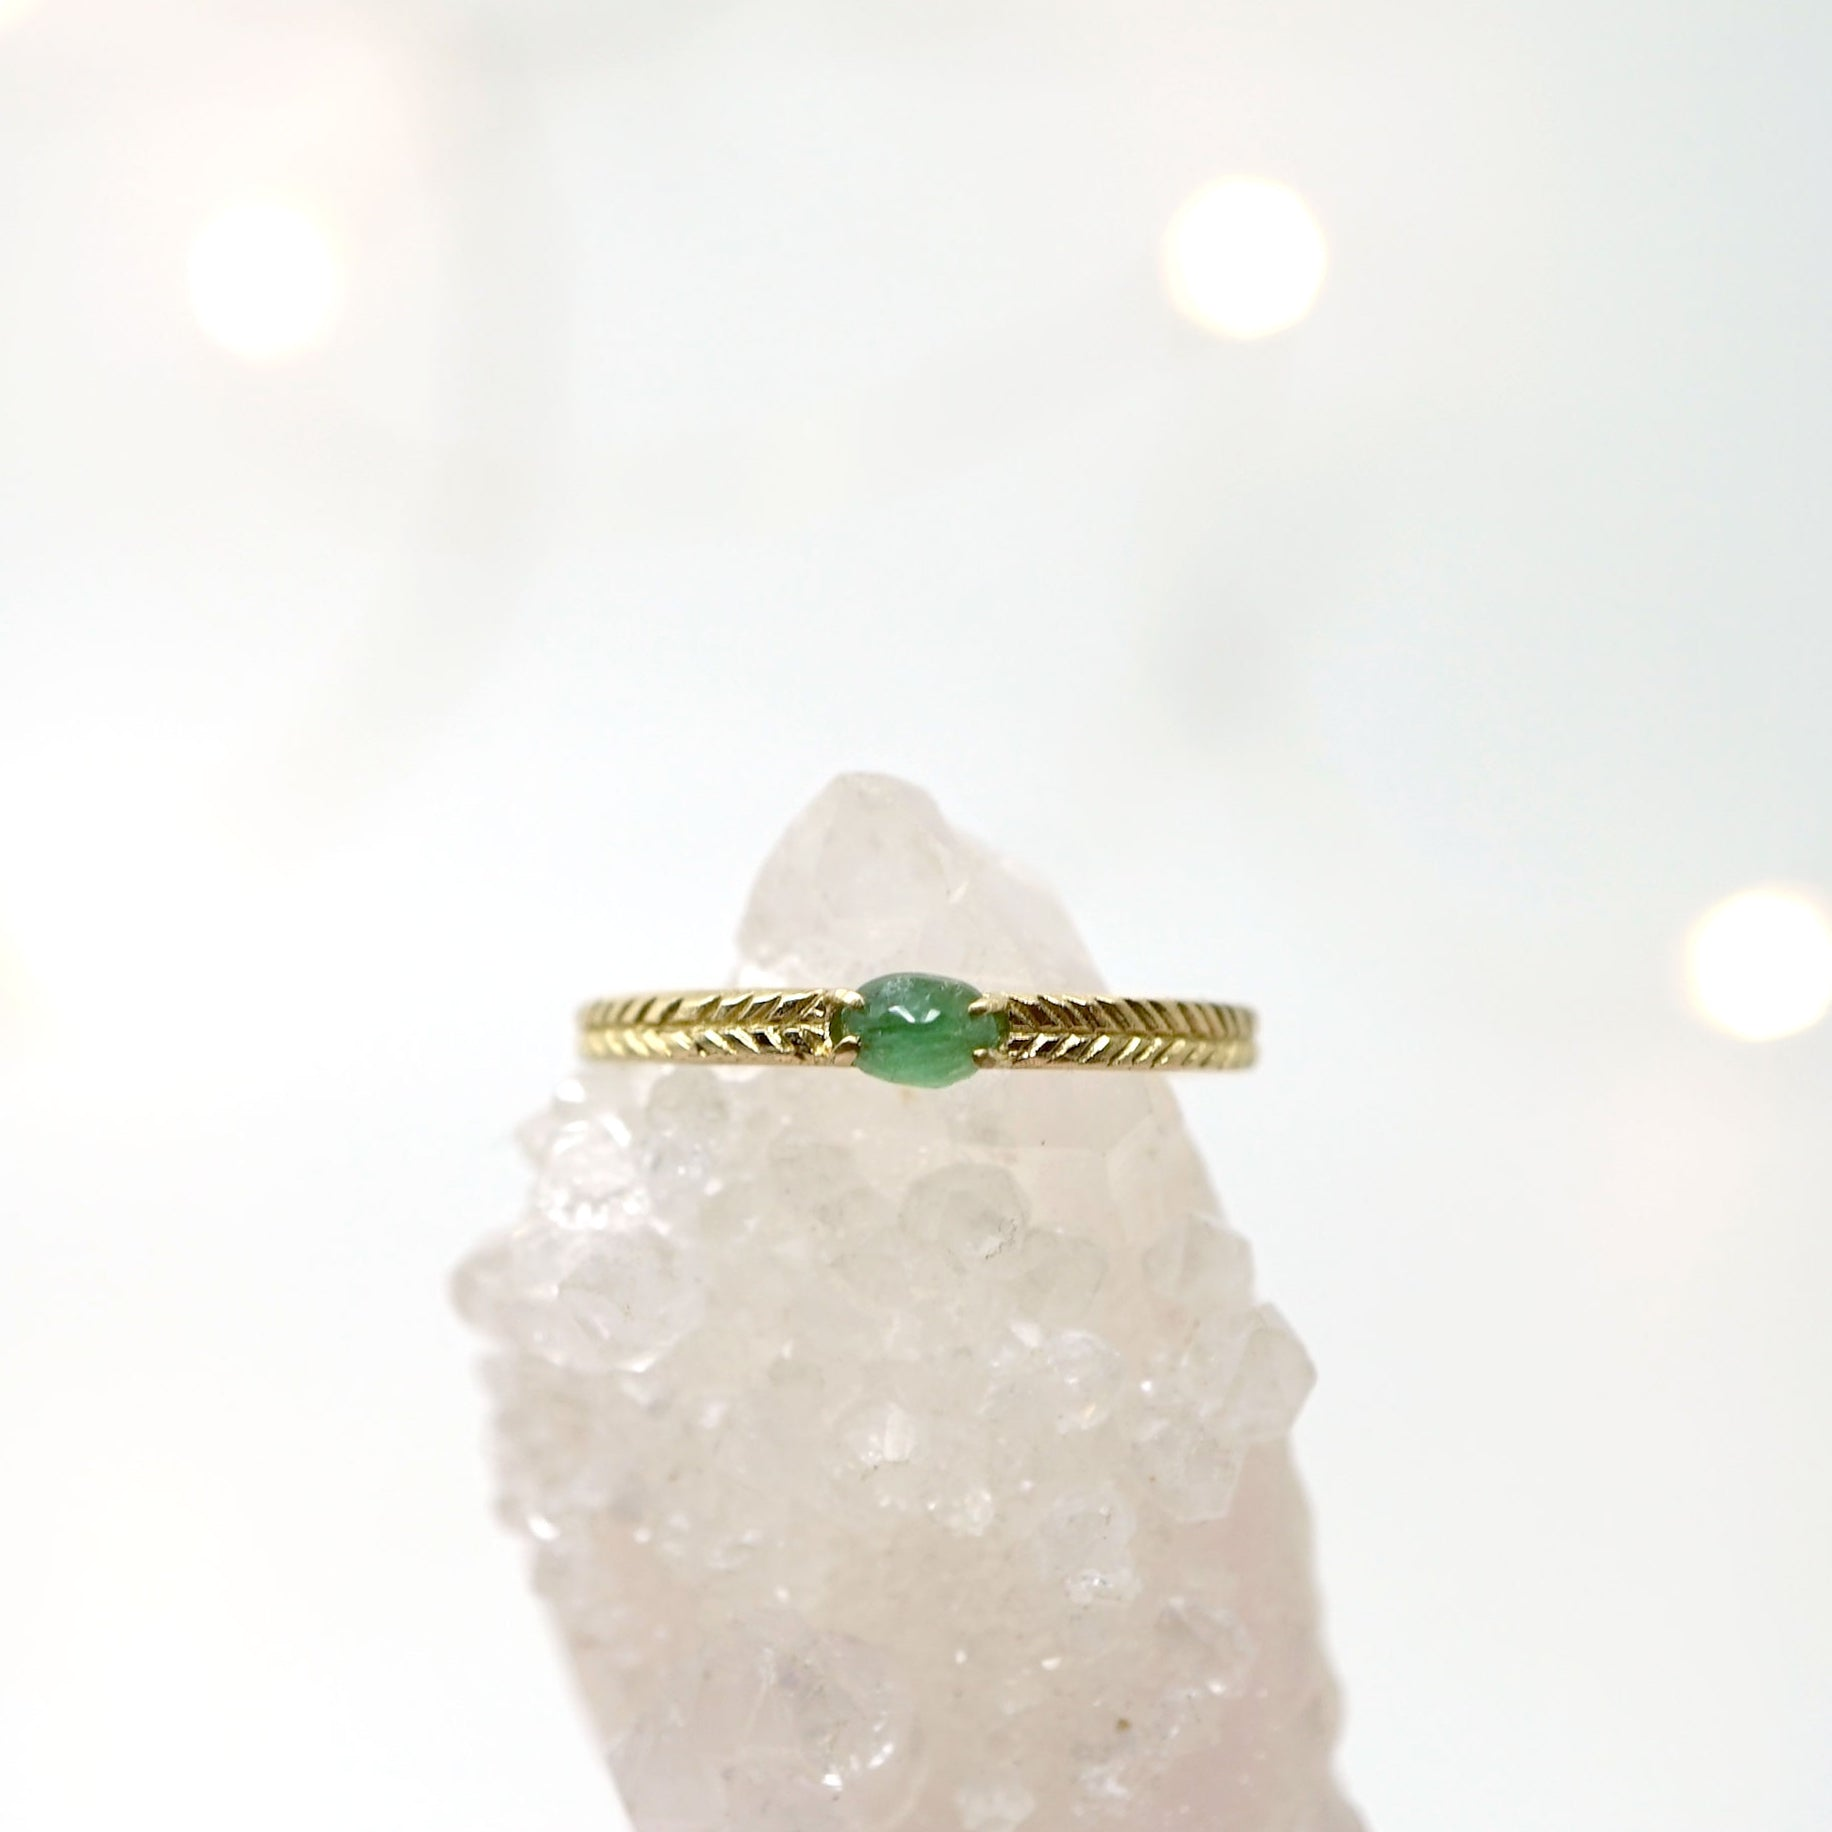 Emerald ring with details in 14k gold